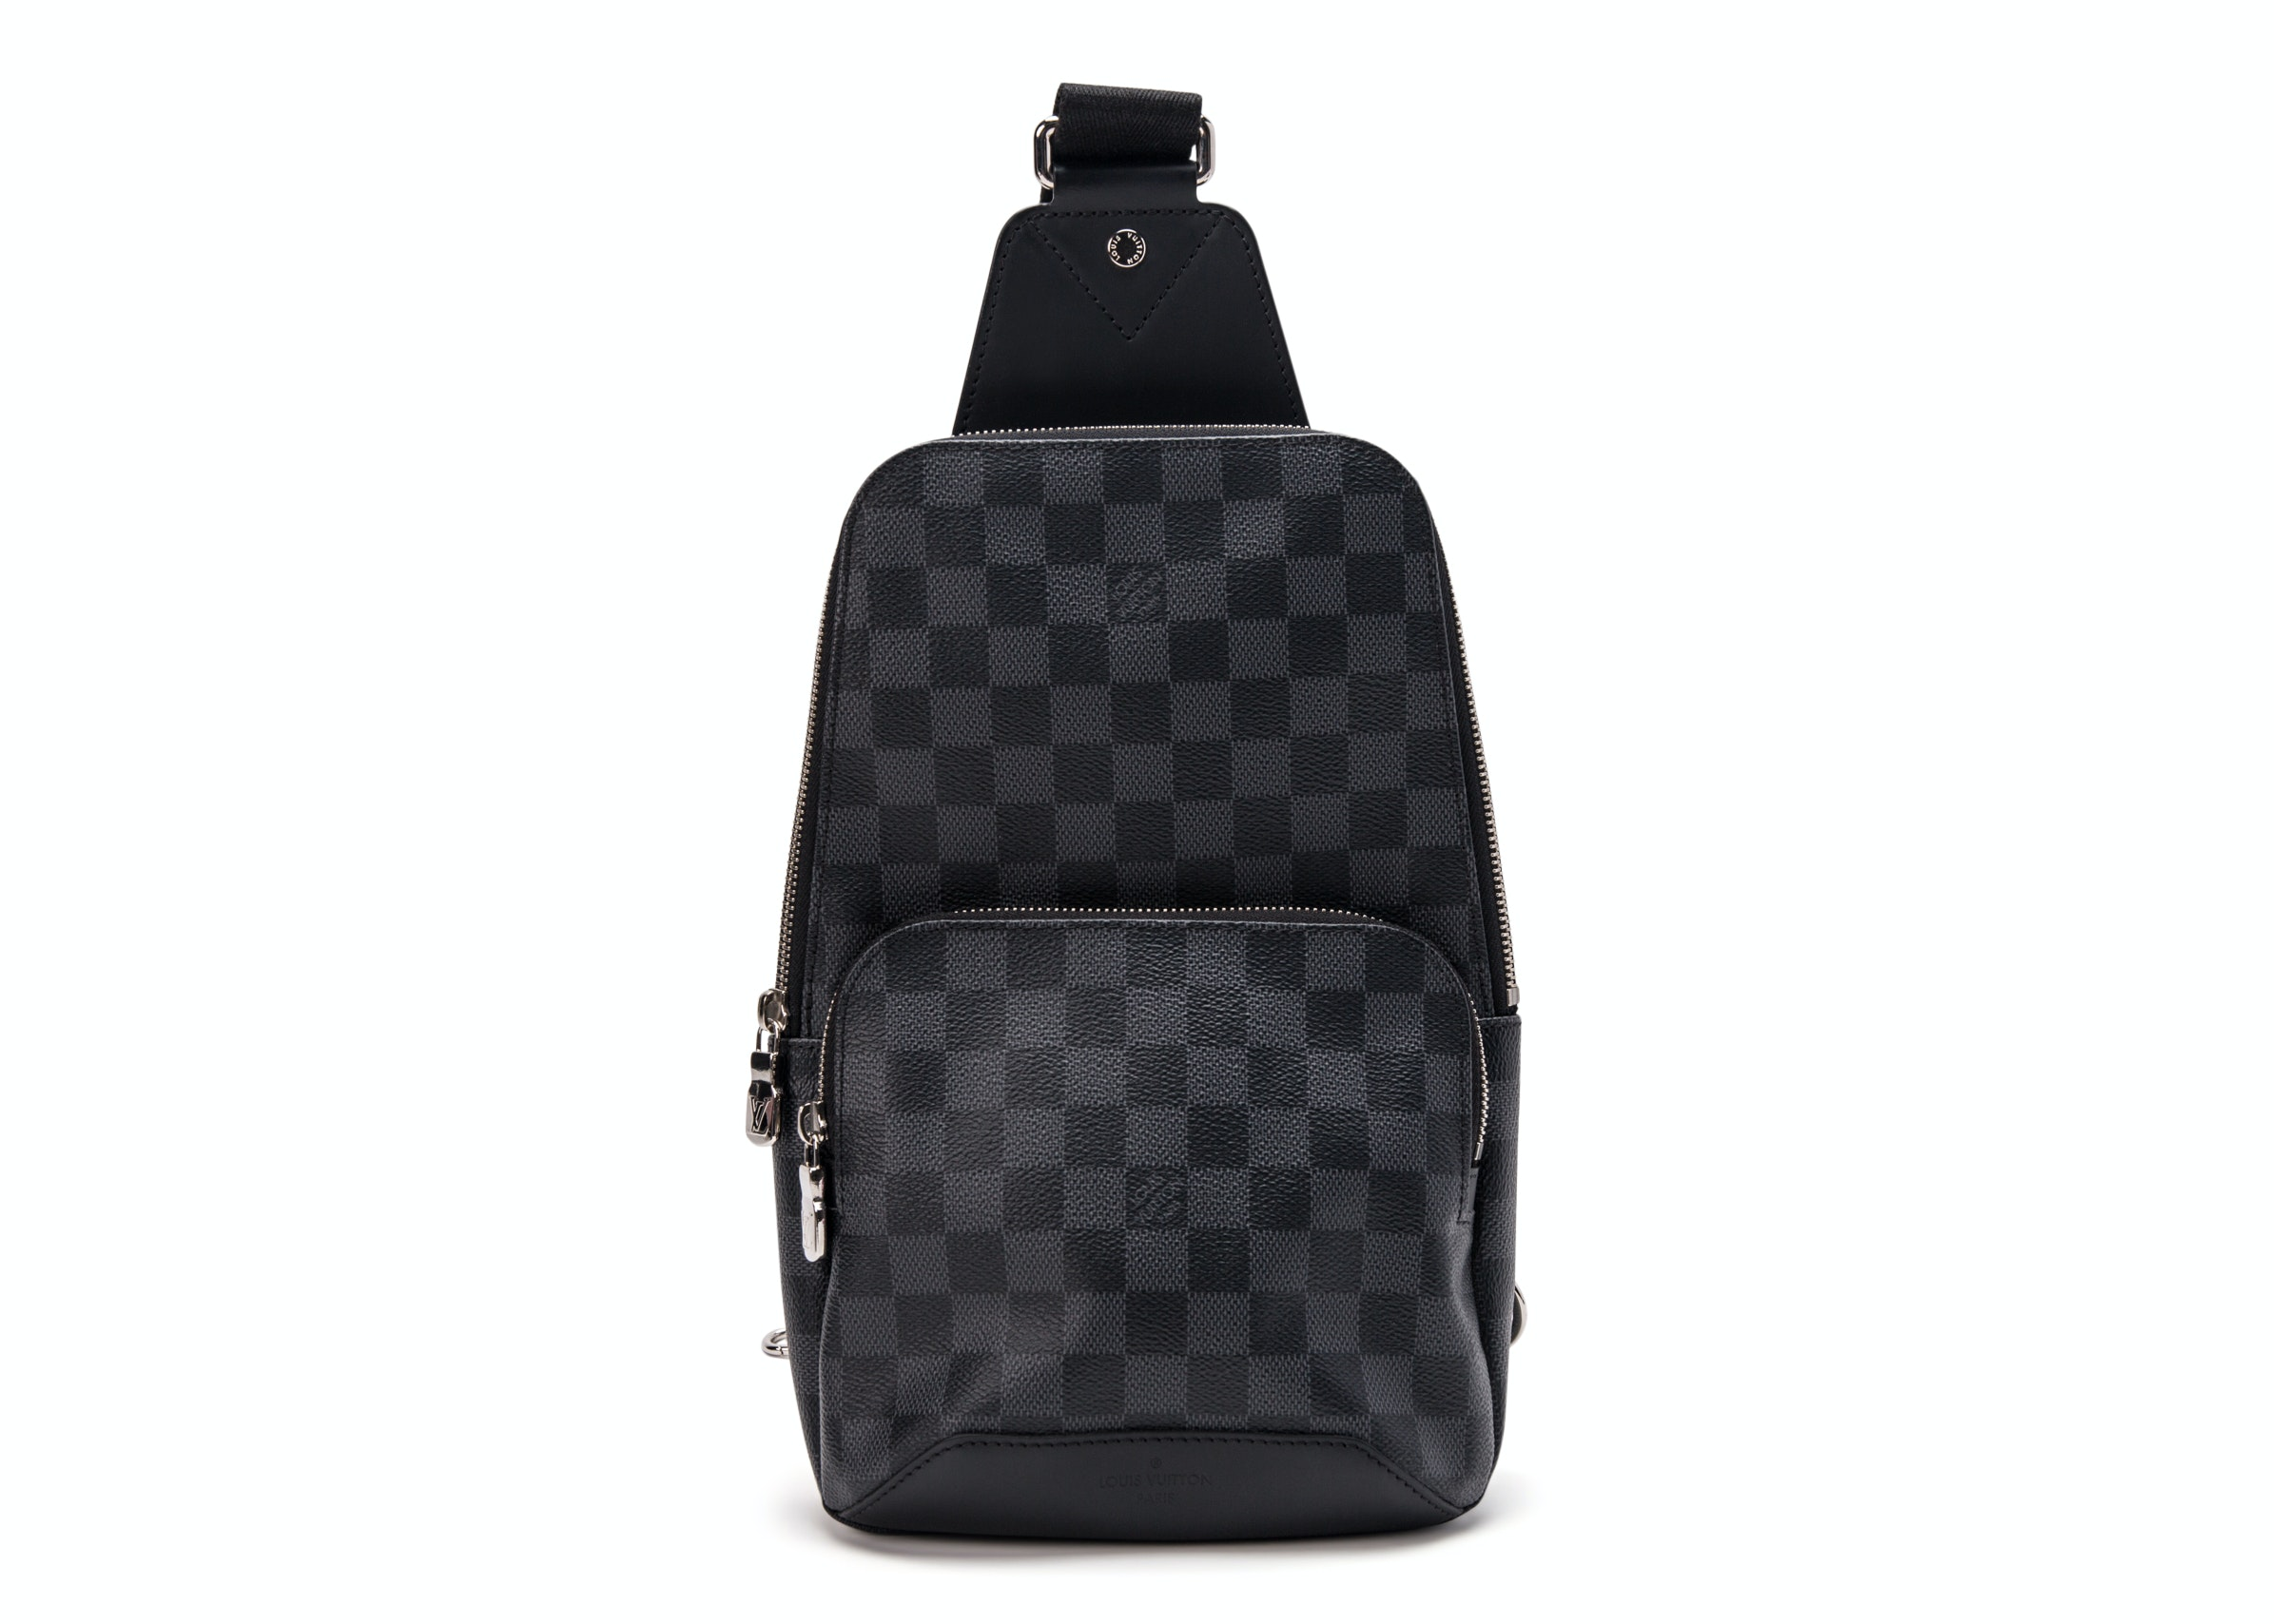 Louis Vuitton Backpack Avenue Silng Damier Graphite Black/Gray